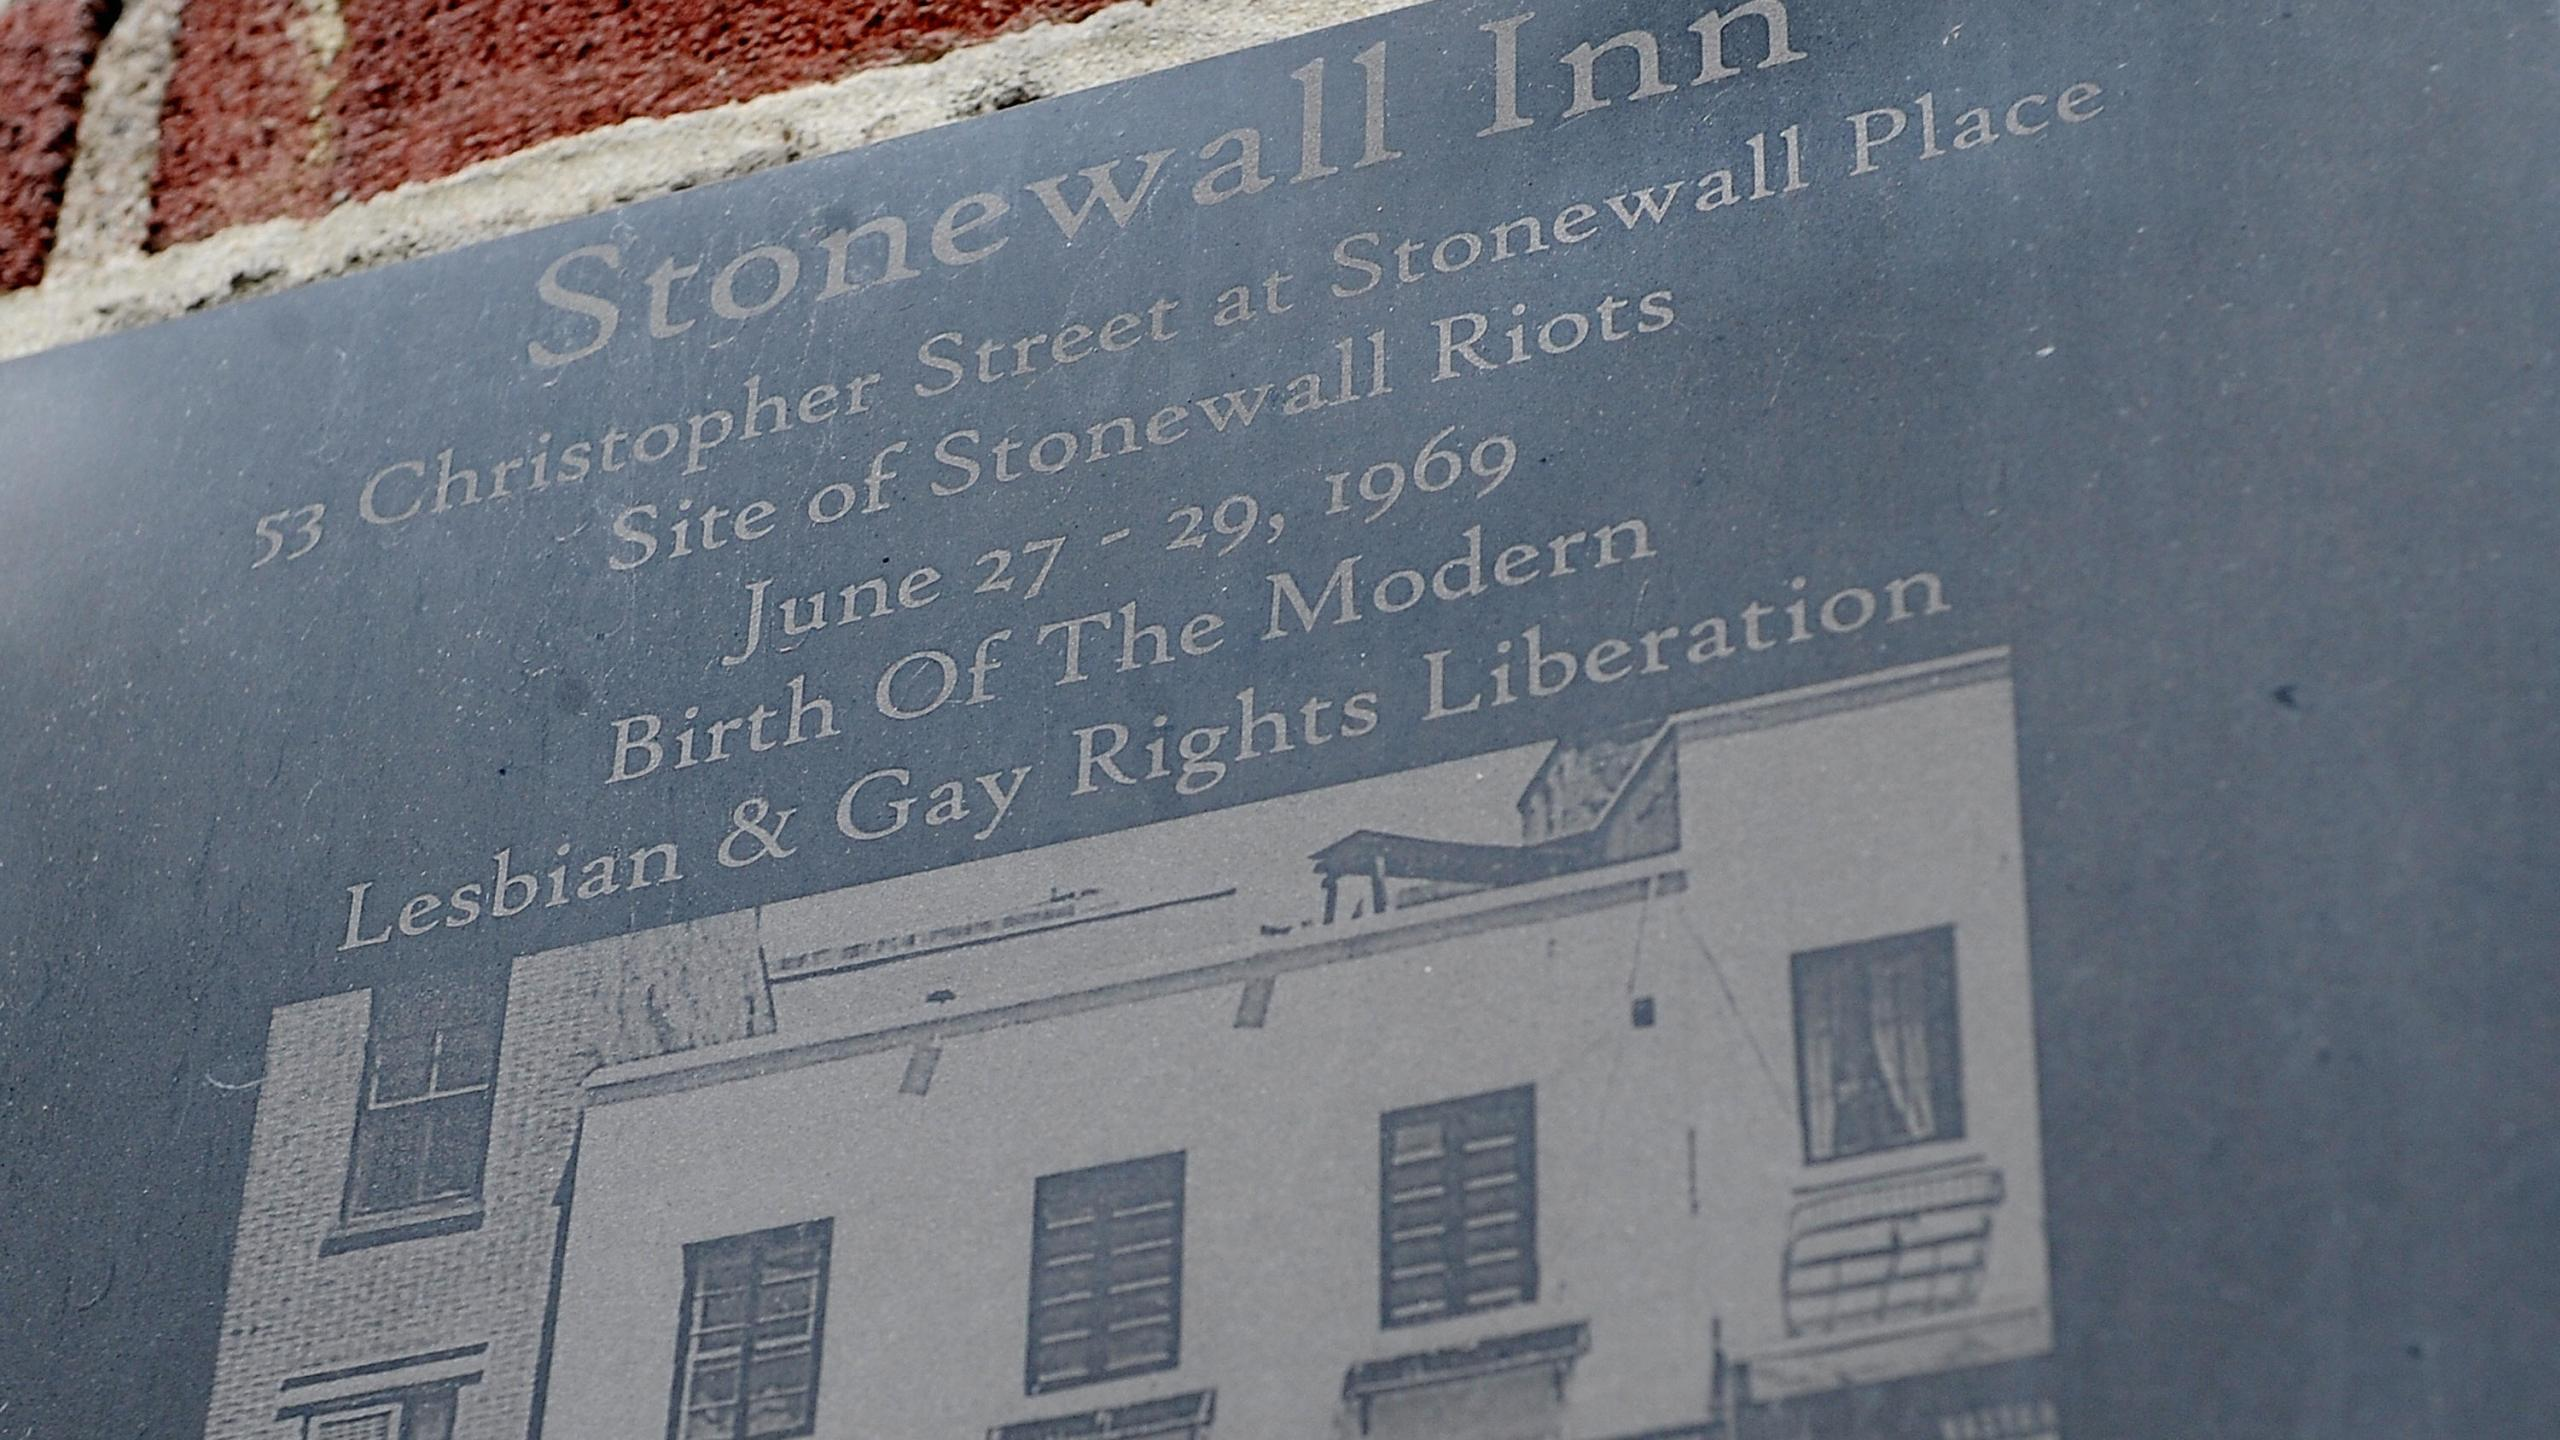 A plaque marks the site of the Stonewall riots at the Stonewall Inn in New York City on June 23, 2009. (Credit: STAN HONDA/AFP/Getty Images)